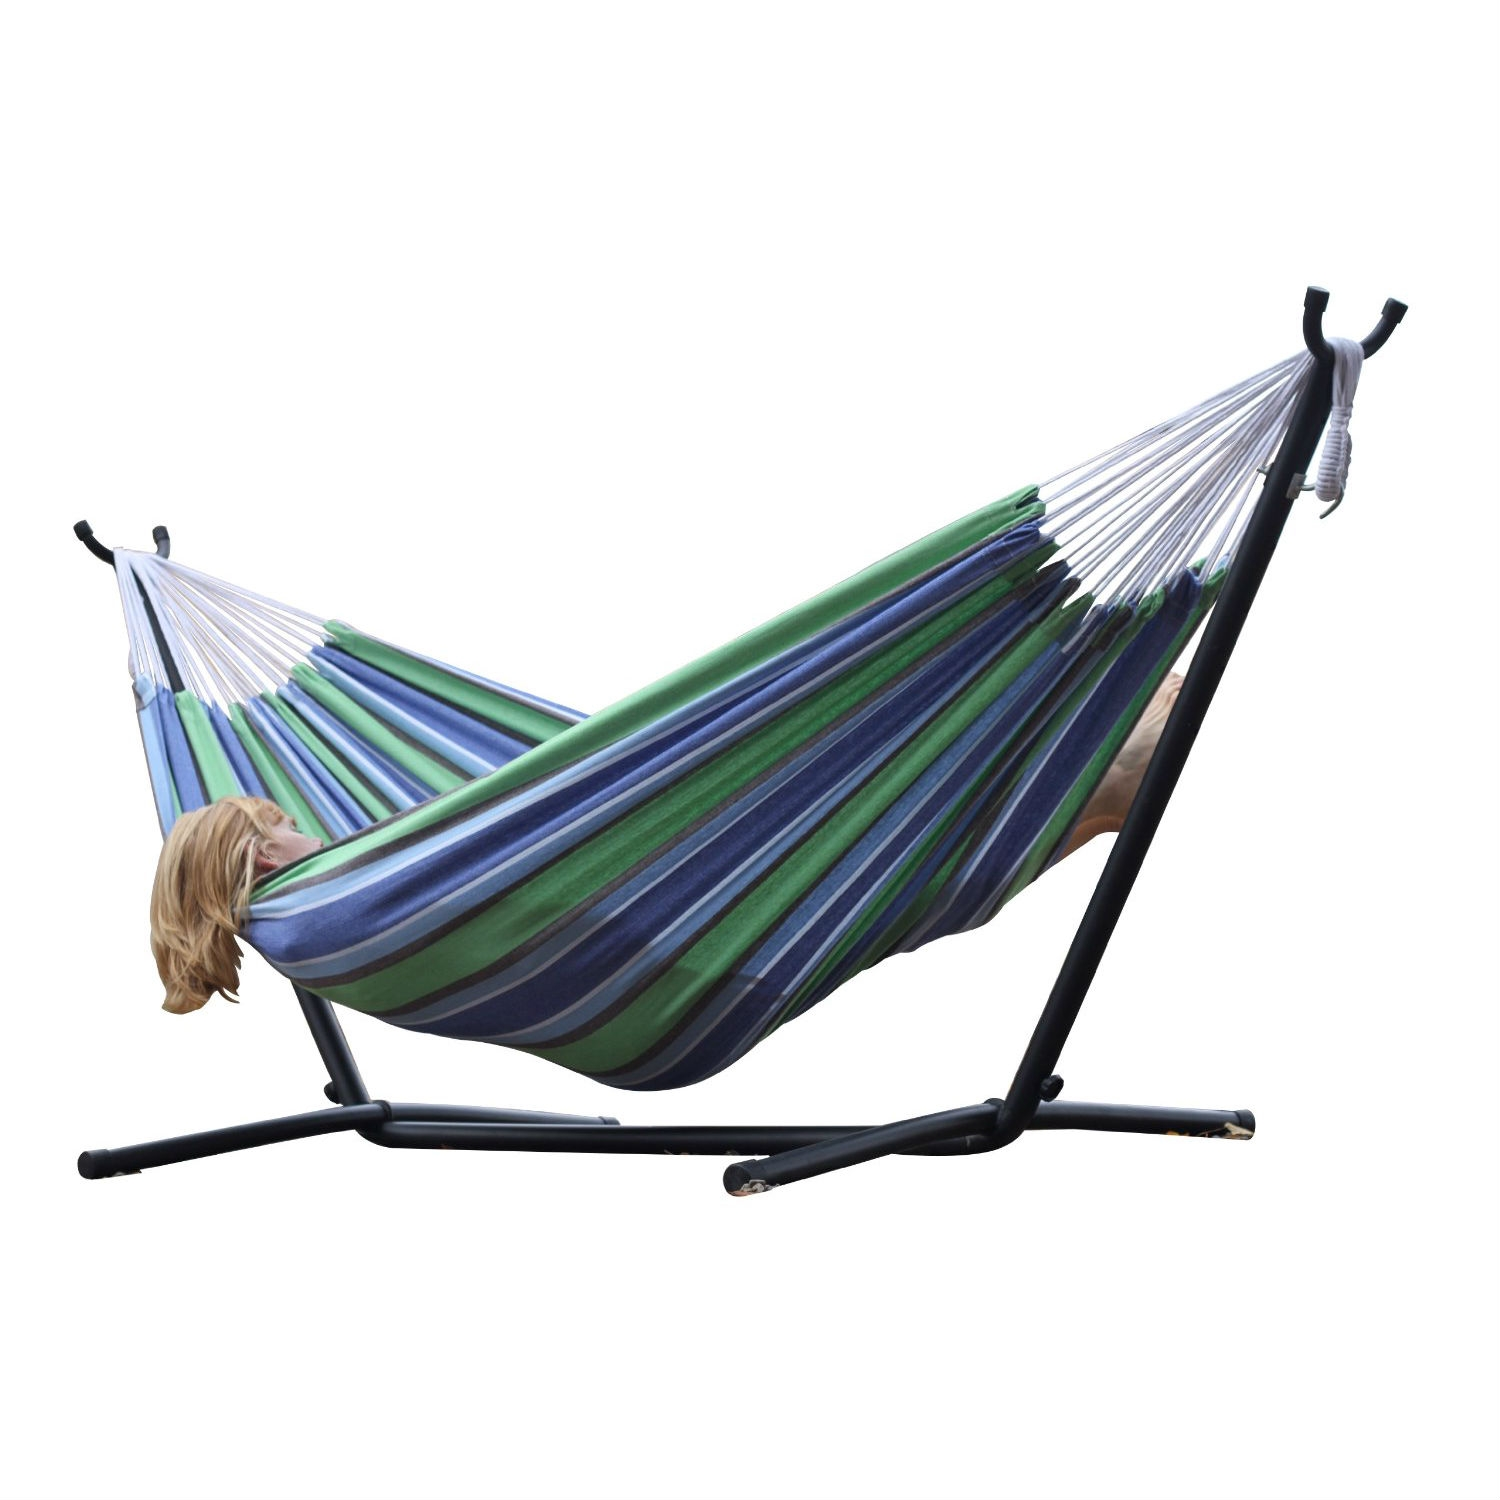 Oasis Blue Green Stripes Hammock with Steel Hammock Stand, VOHS13106 :  A top choice for couples lounging, this Oasis Blue Green Stripes Hammock with Steel Hammock Stand comes with a space-saving steel stand and a double hammock in your choice of cotton or Sunbrella fabric. You'll enjoy the freedom that the space-saving 9-foot stand provides by allowing you to set up your hammock in the most convenient location -- no longer having rely on tying your hammock to two trees. And both the Sunbrella and cotton hammocks accommodate two adults. The well-designed heavy duty steel stand gives you a sense of security to enjoy your slumber, and it's ideal for this non-spreader bar style of hammock. Created for long life and stability, it's made from heavy gauge steel and it easily assembles in minutes -- no tools required. Weighing in at a total of 35 pounds, this entire hammock combo can be easily maneuvered around your backyard or patio. Powder coated in an oil rubbed bronze finish, the stand measures 9 feet in length and all ends are finished with plastic caps. It's also easy to break down for storage or travel, and it comes with its own carrying case.